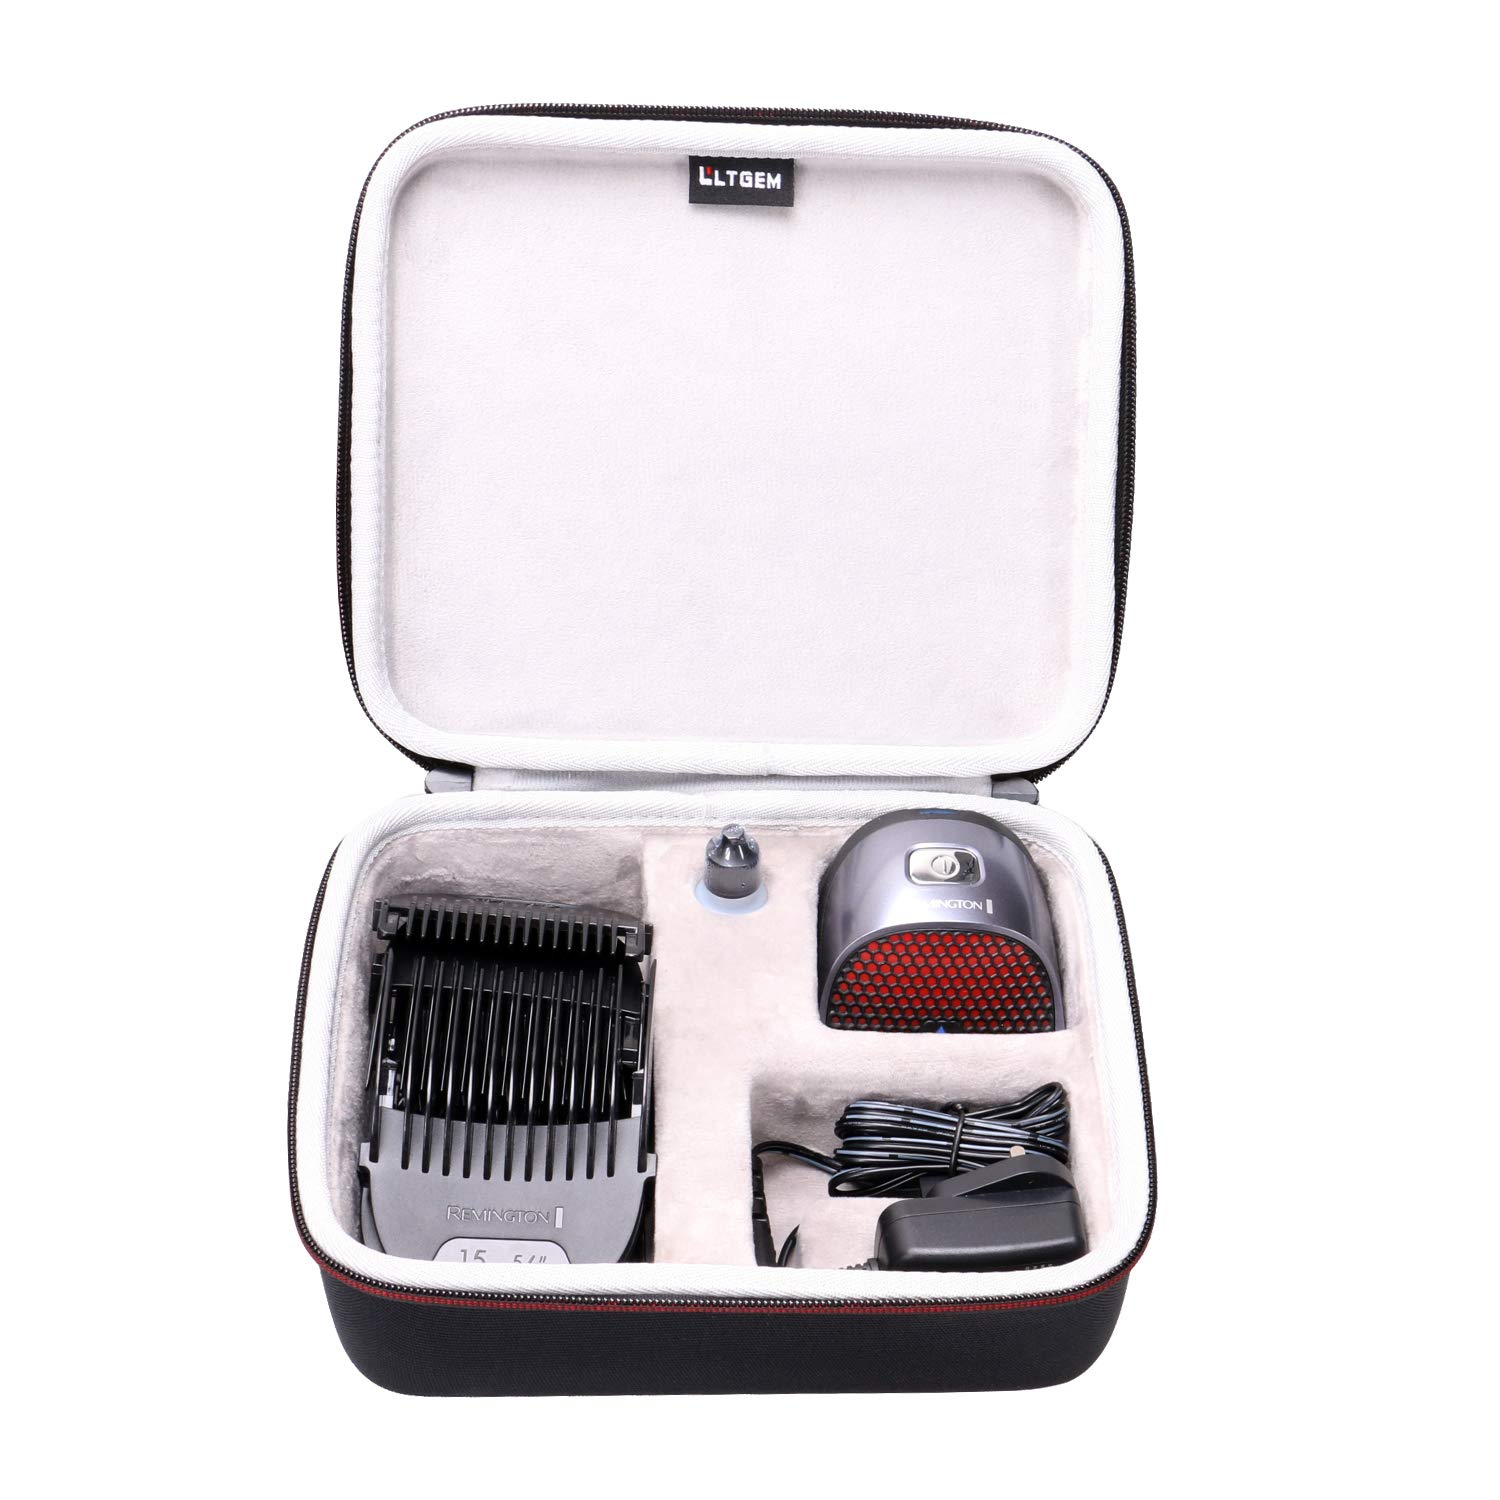 LTGEM Hard Travel Carrying Case for Remington HC4250 Shortcut Pro Self-Haircut Kit, Hair Clippers Hair Trimmers Clippers by LTGEM (Image #1)